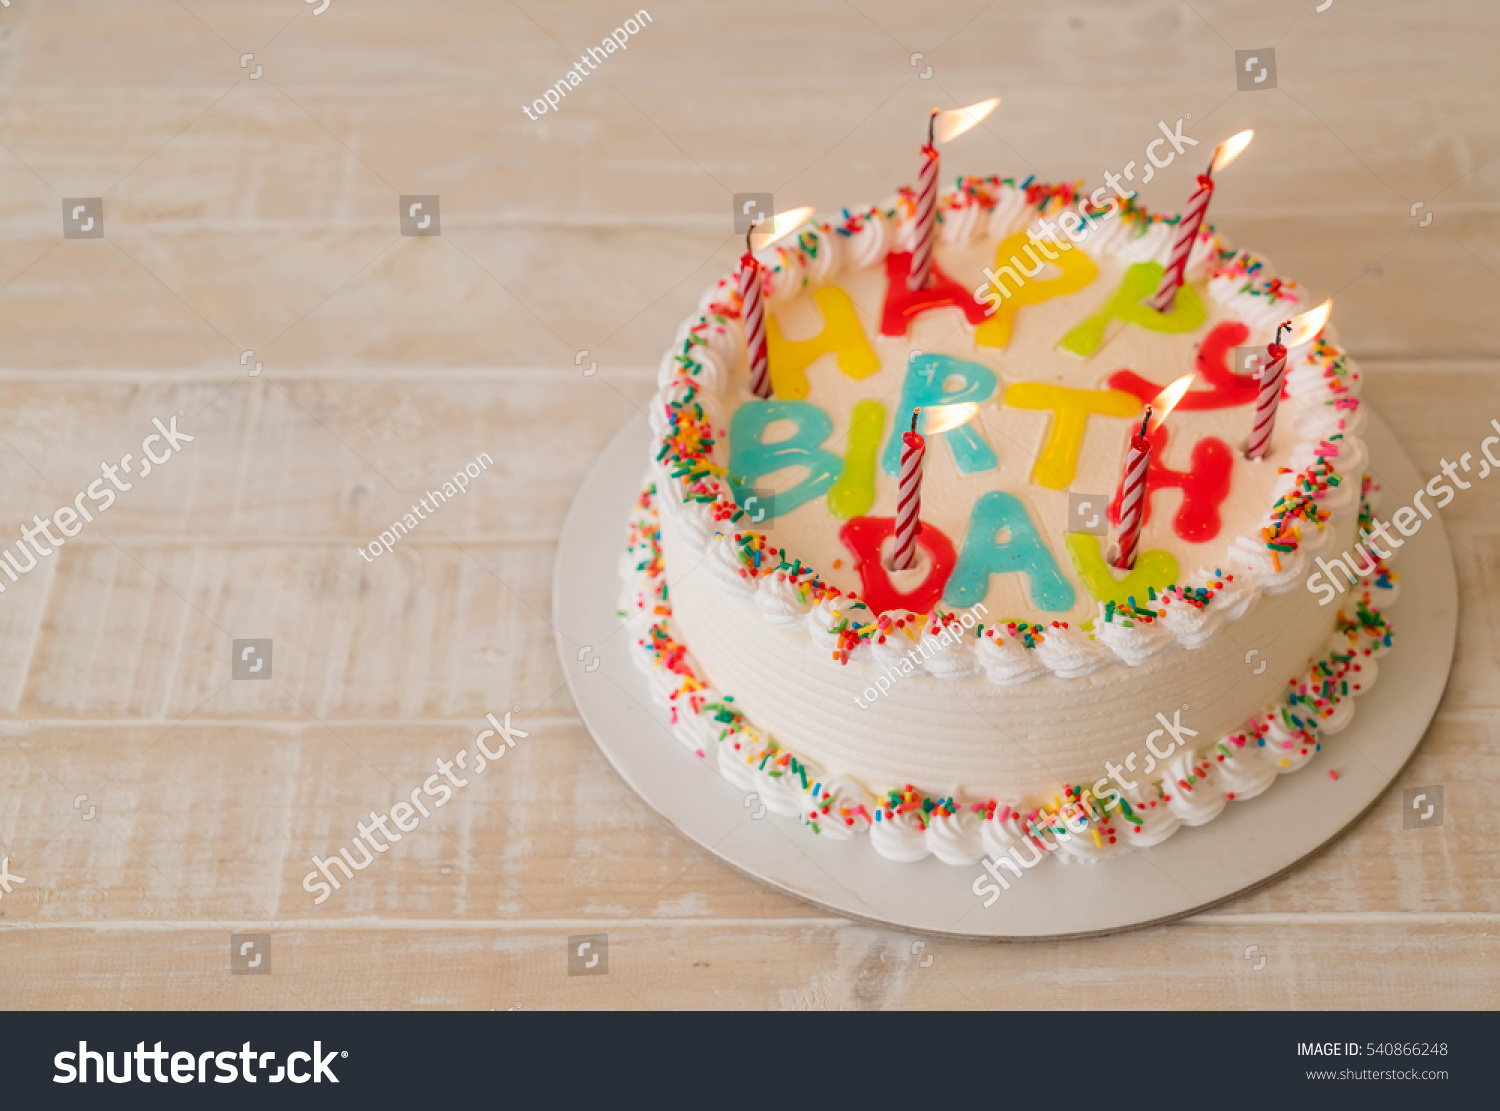 Happy Birthday Cake On Table Stock Photo Royalty Free 540866248